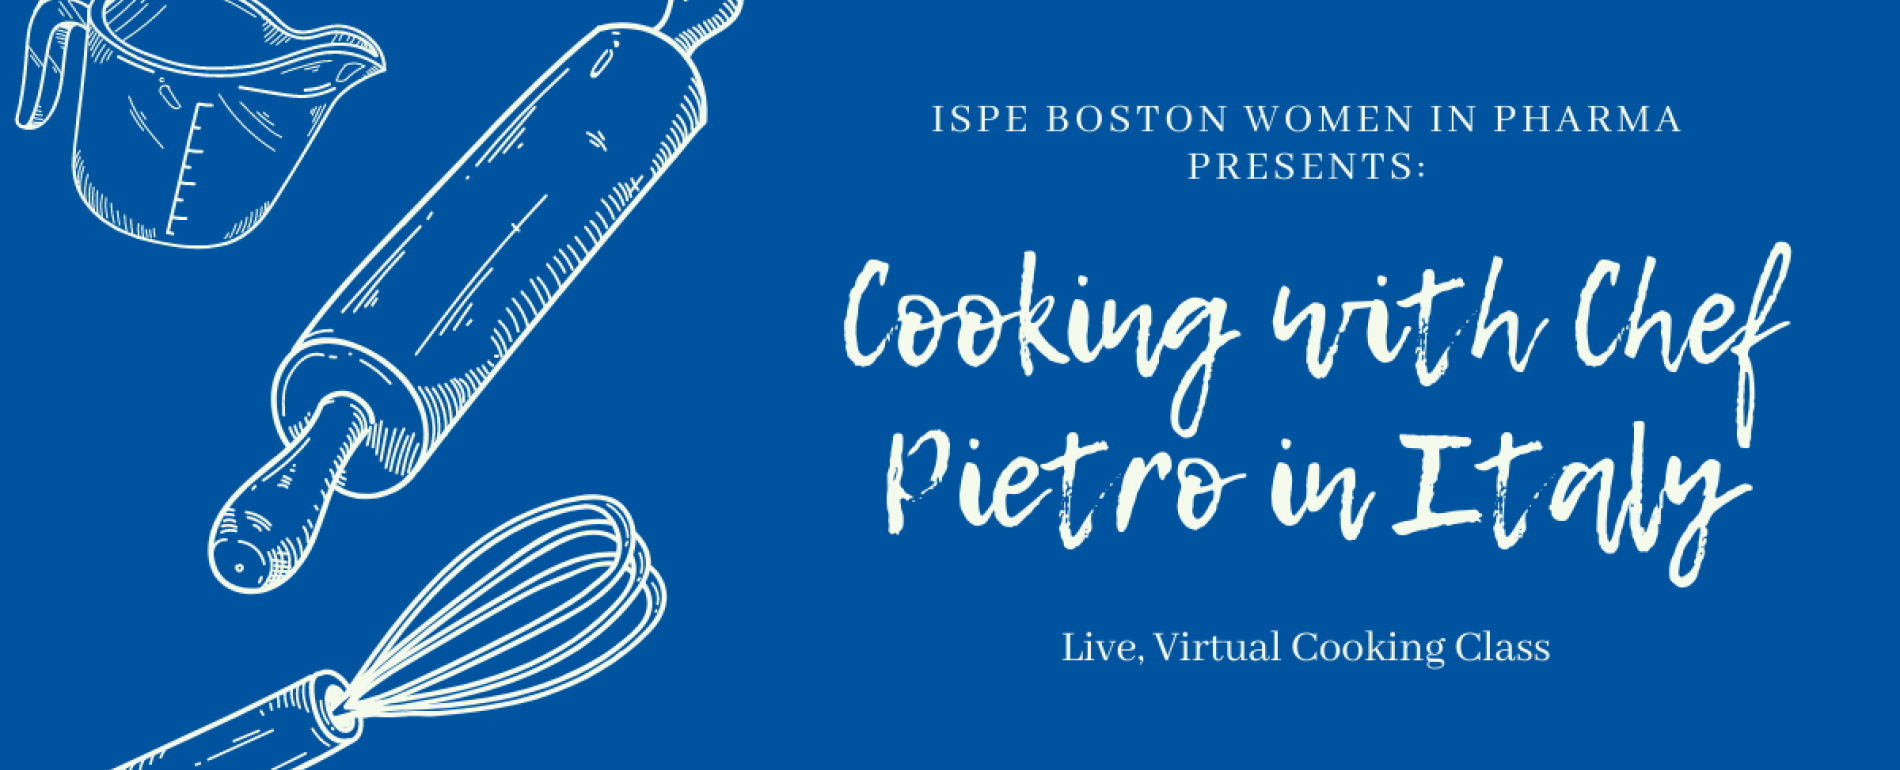 ISPE Women in Pharma Cooking with Chef Pietro in Italy